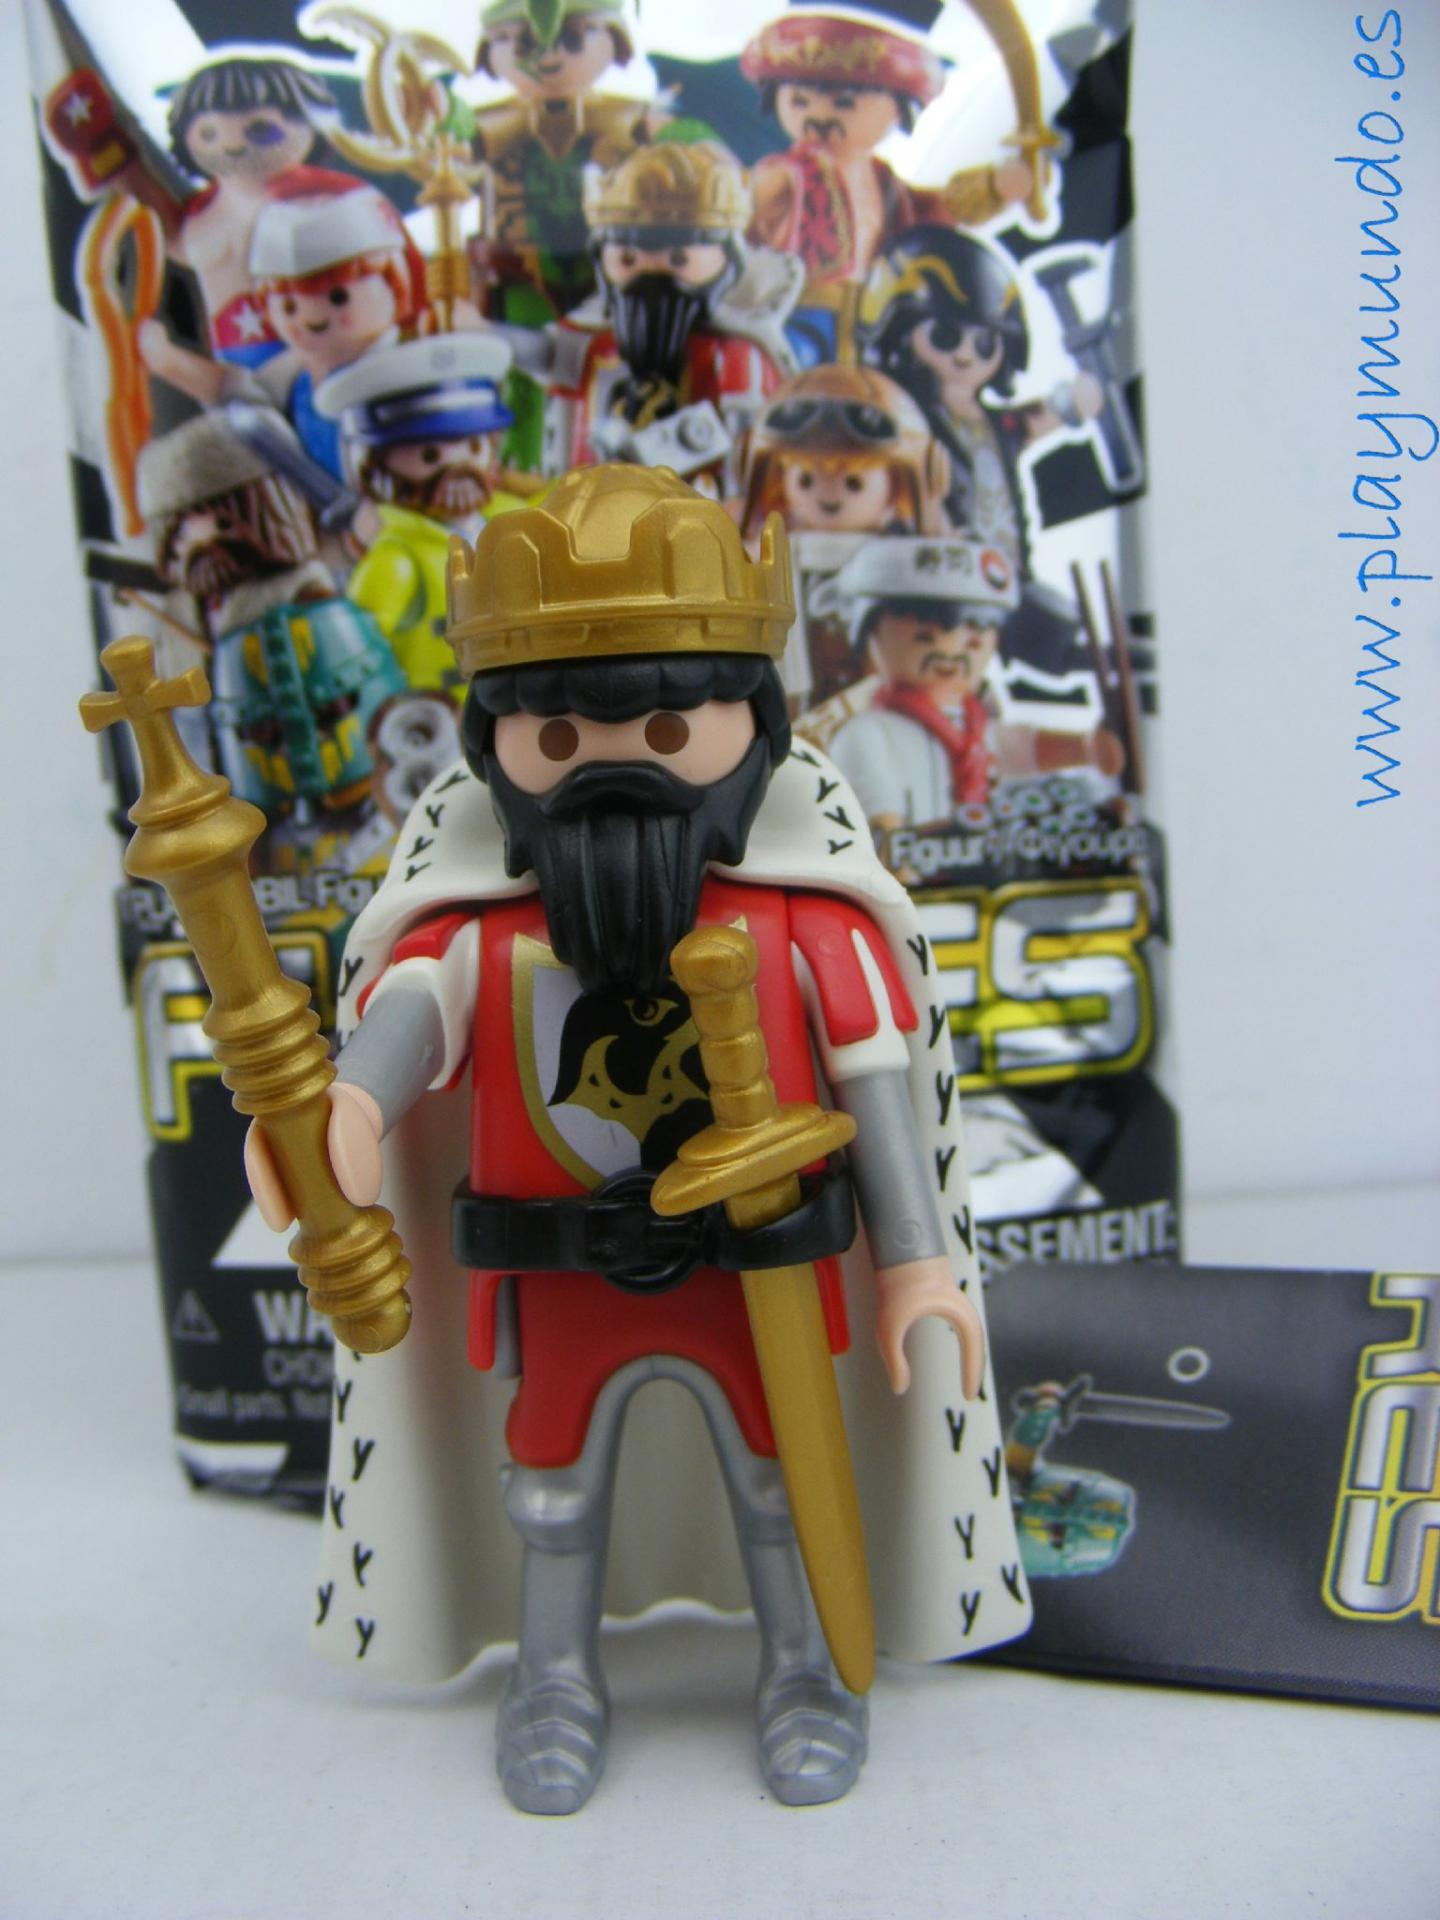 PLAYMOBIL SERIE 13 CHICOS REY MEDIEVAL DEL AGUILA